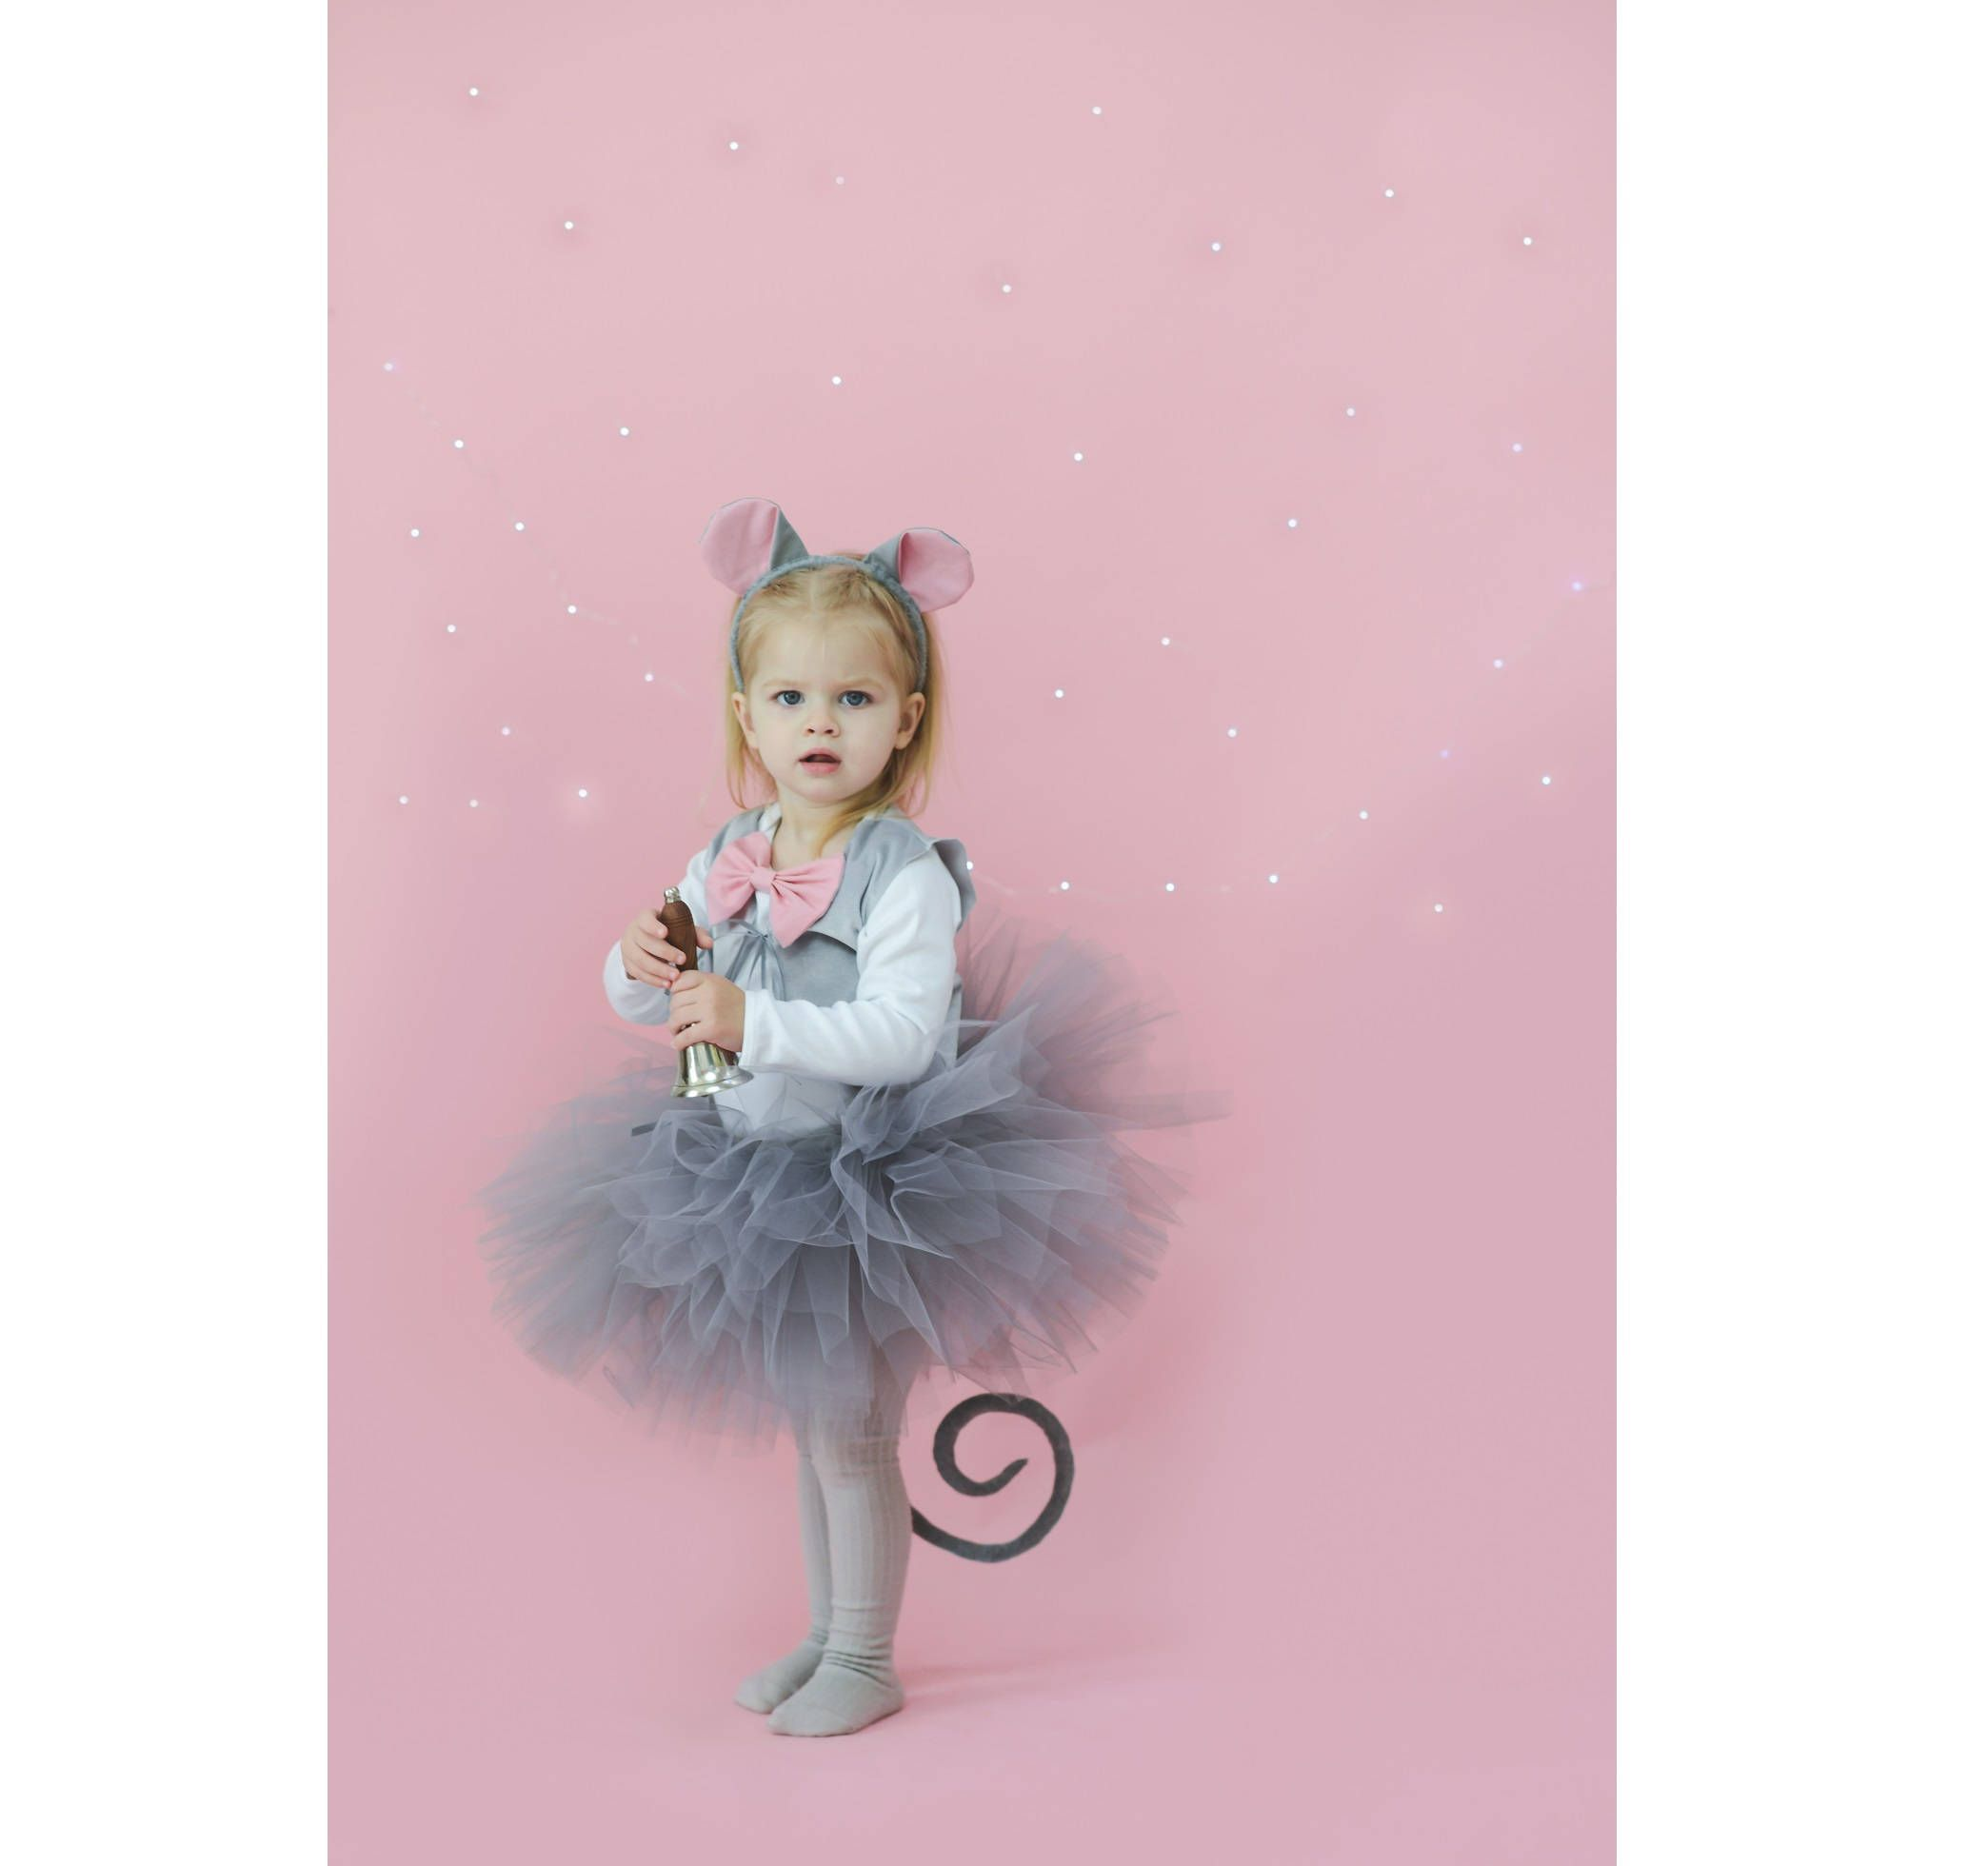 Mouse costume, baby costume, halloween kostume kid, Halloween costume, party costume, tutu outfit, Mouse ears, Baby mouse, Puffy tulle skirt